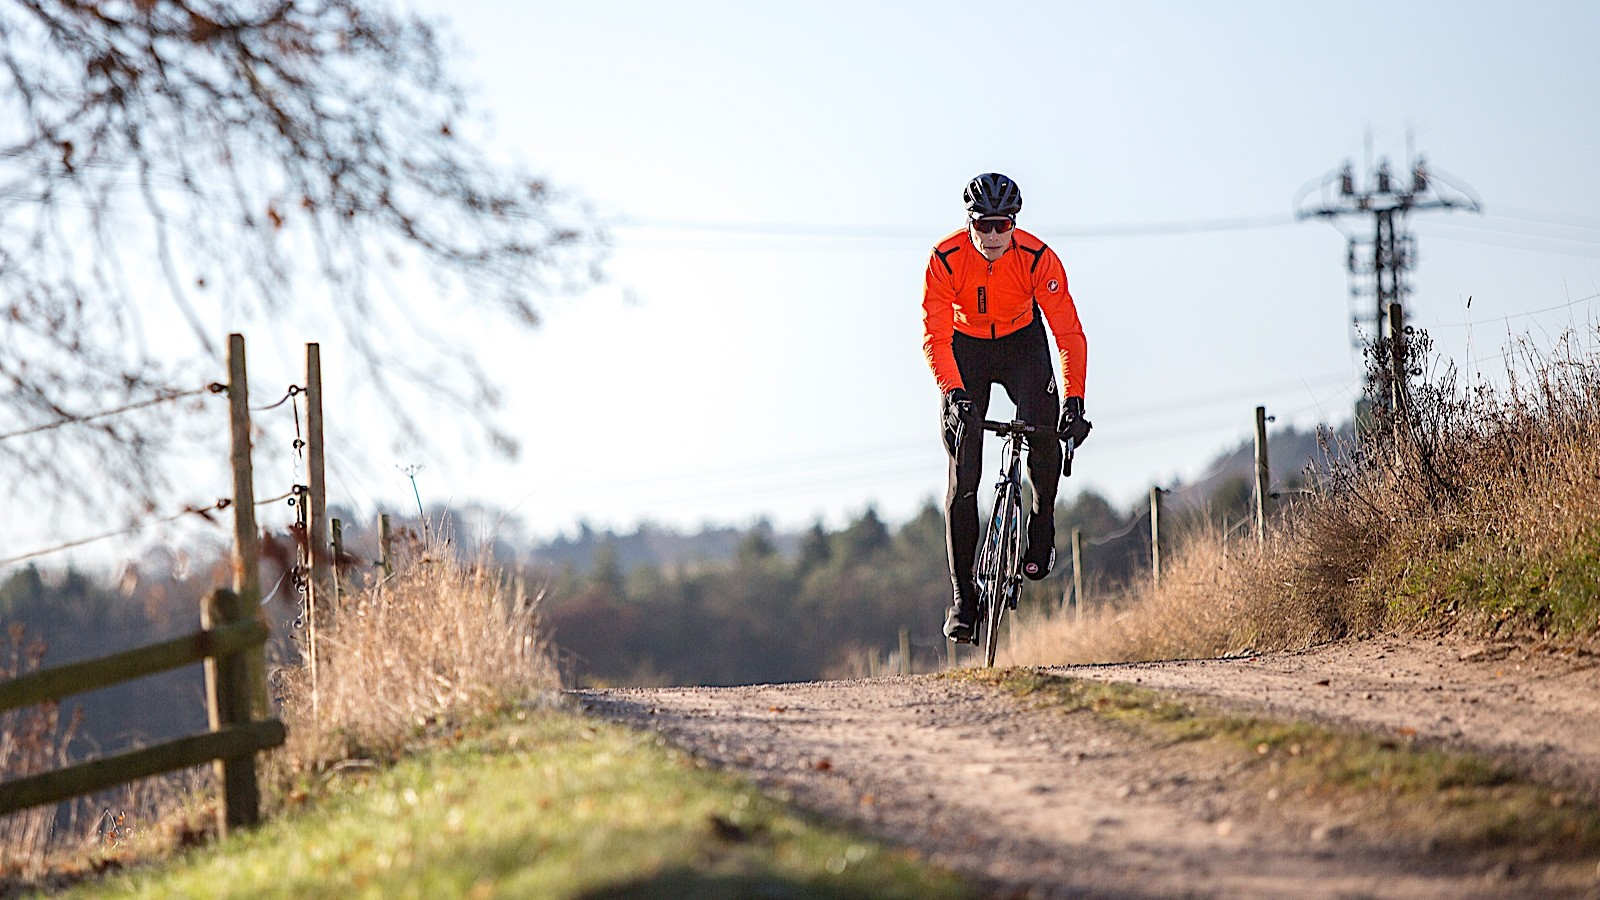 Castelli's new Rain or Shine line uses Gore and other fabrics for breathable, wind- and water-resistant performance